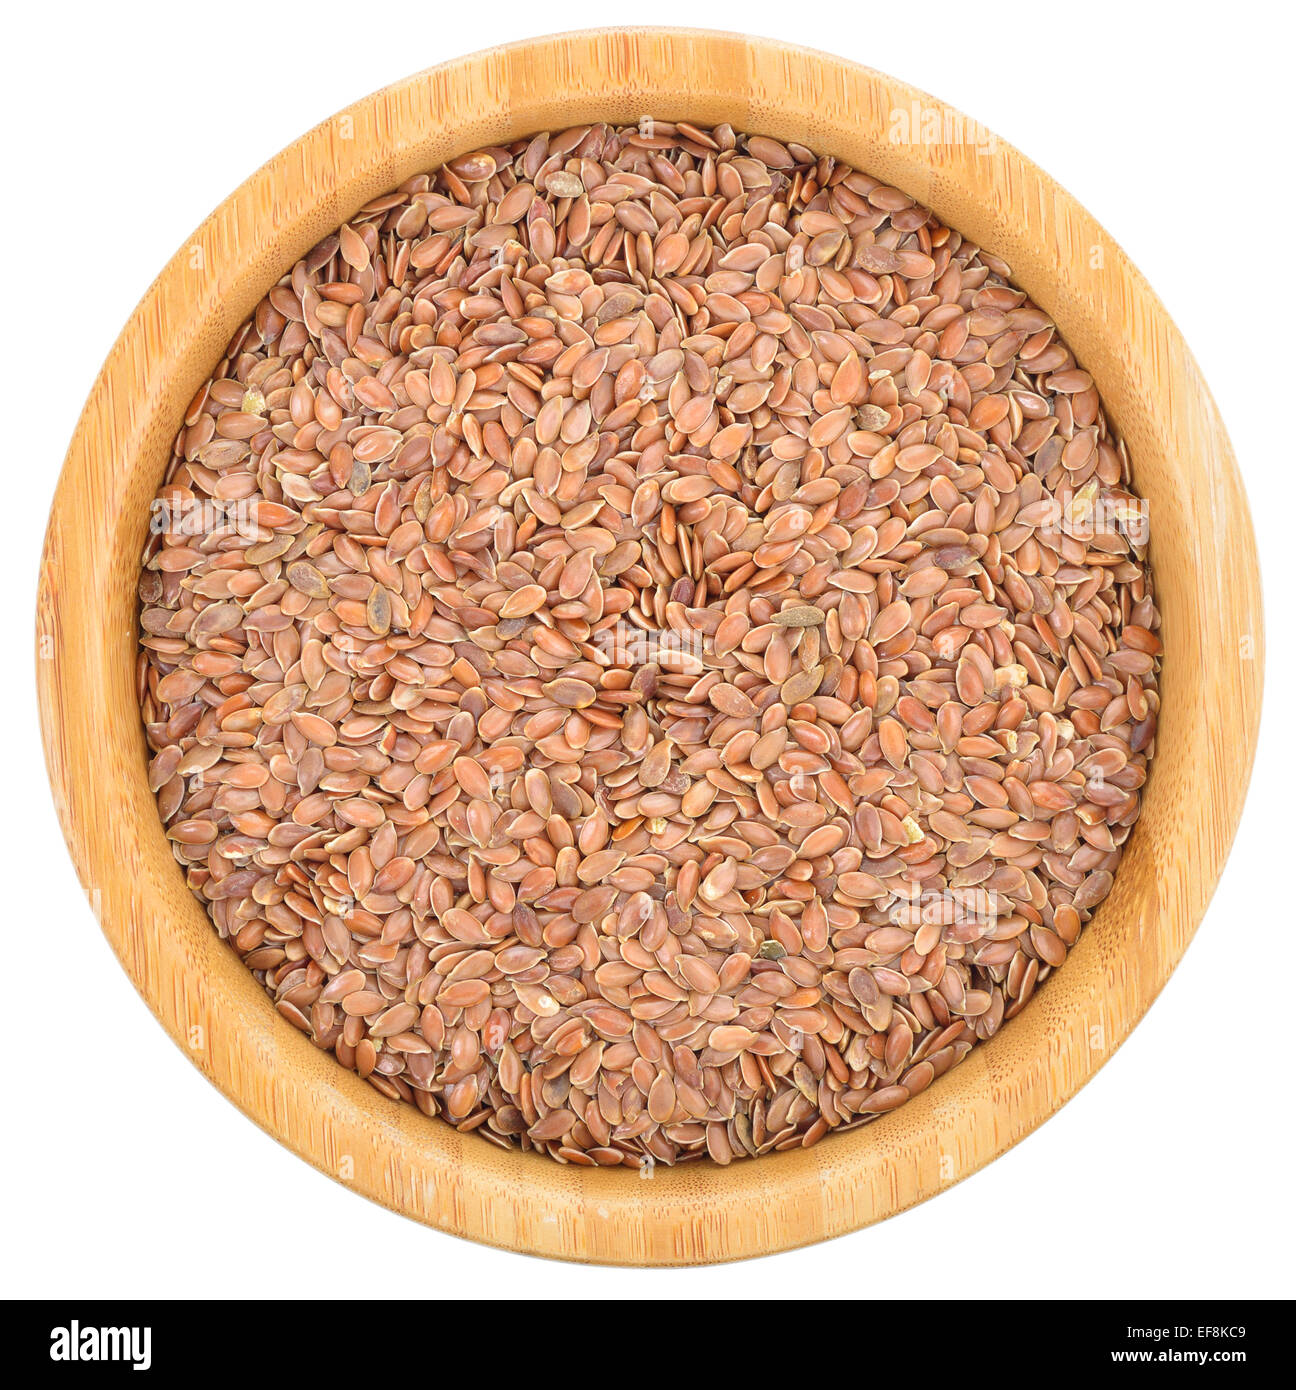 Brown flax seeds in wooden bowl isolated on white background. Flax seeds are rich in omega-3 fatty acid. Top view. - Stock Image